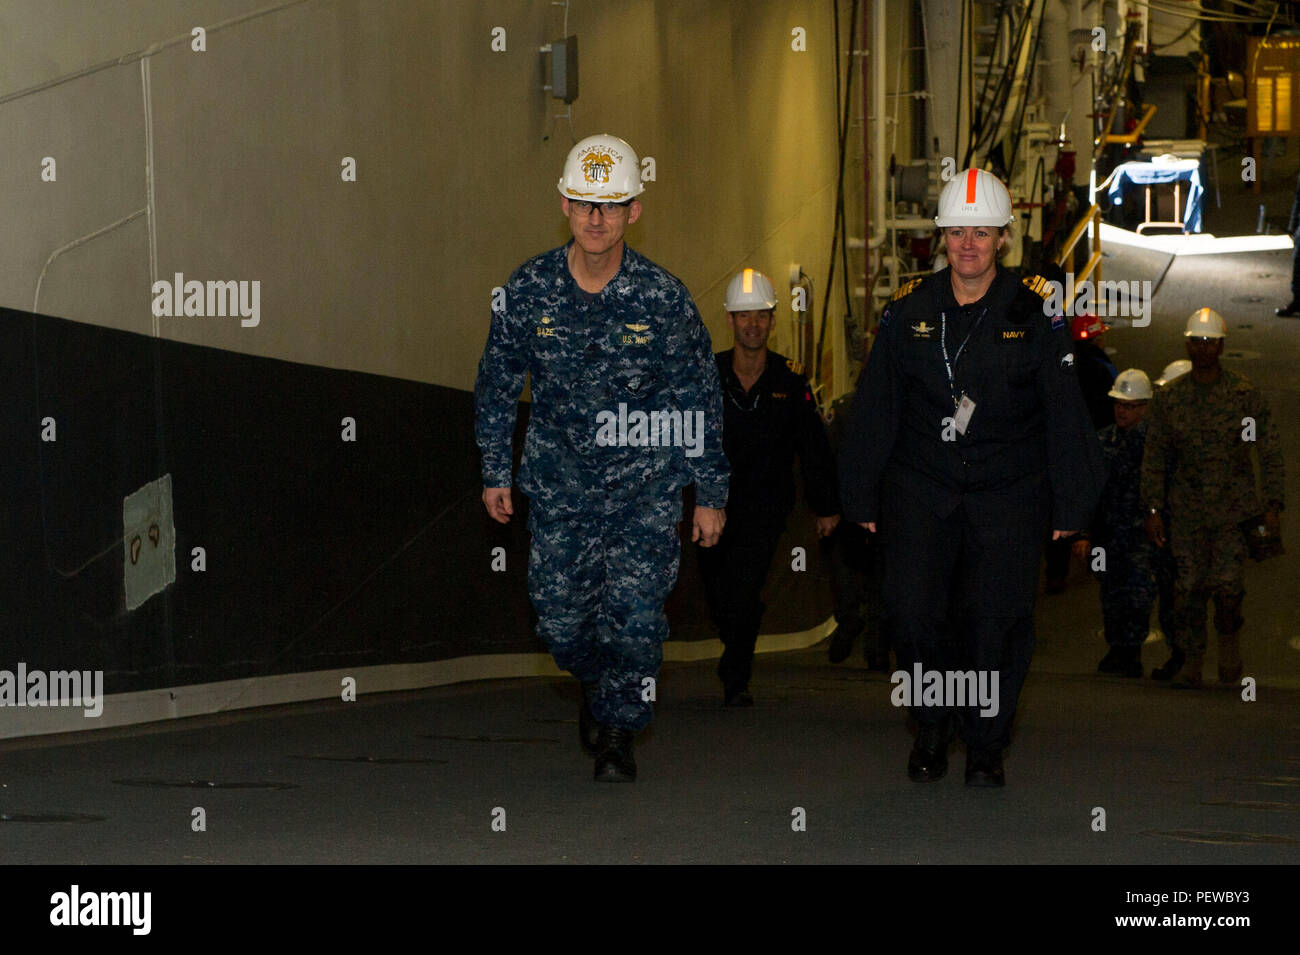 160204-N-VR008-054 SAN DIEGO (Feb. 4, 2016) – Capt. Michael W. Baze, commanding officer of the amphibious assault ship USS America (LHA 6), guides New Zealand Royal Navy officers during a tour of the ship. America is currently undergoing a post-shakedown availability (PSA) in which the ship's crew and assigned contractors make improvements to the ship's design. (U.S. Navy photo by Mass Communication Specialist 3rd Class Kyle Goldberg/Released) - Stock Image